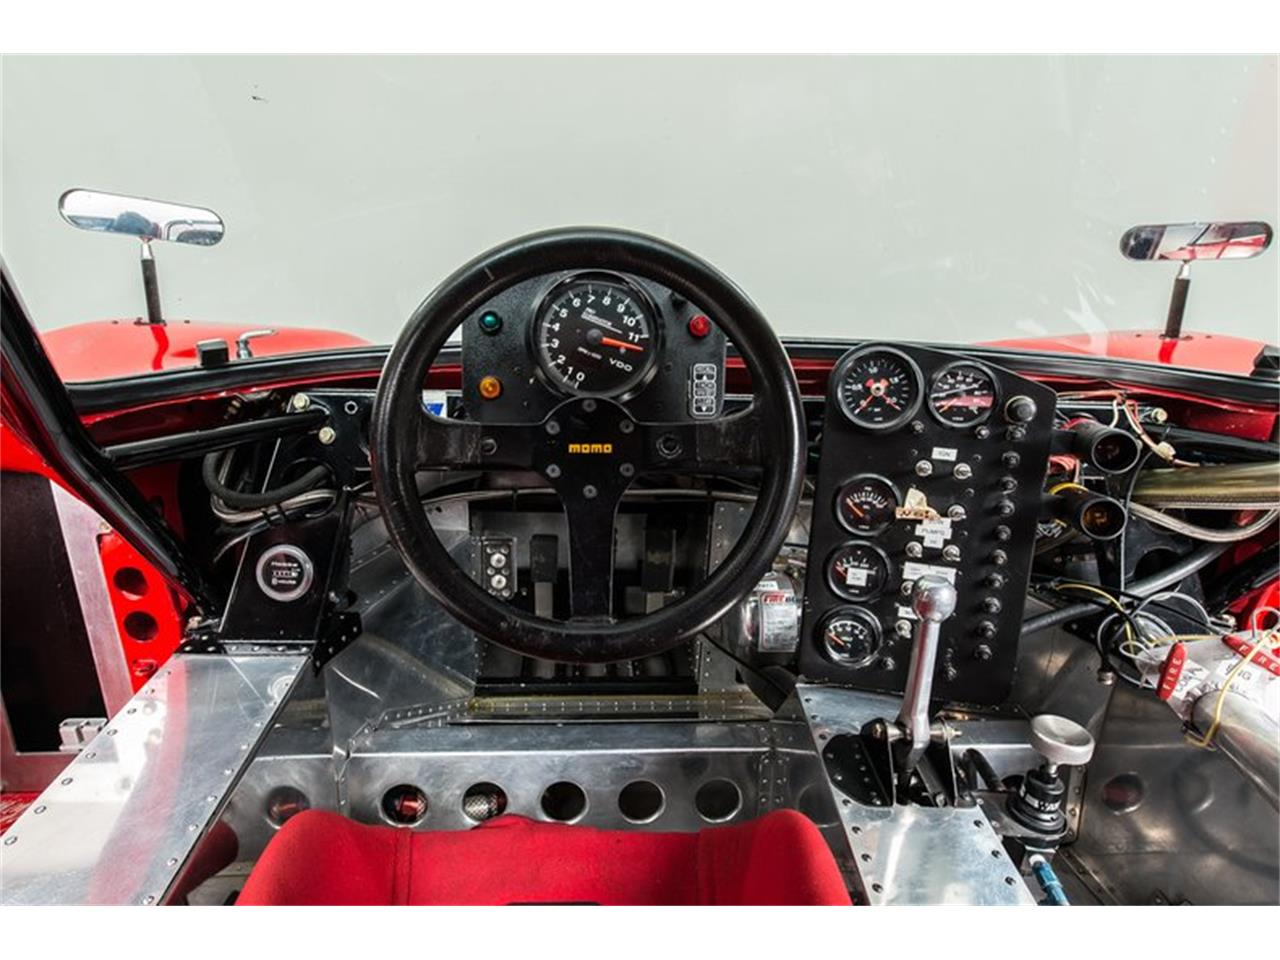 Large Picture of '82 Porsche 935 located in Scotts Valley California Auction Vehicle Offered by Canepa - N77M